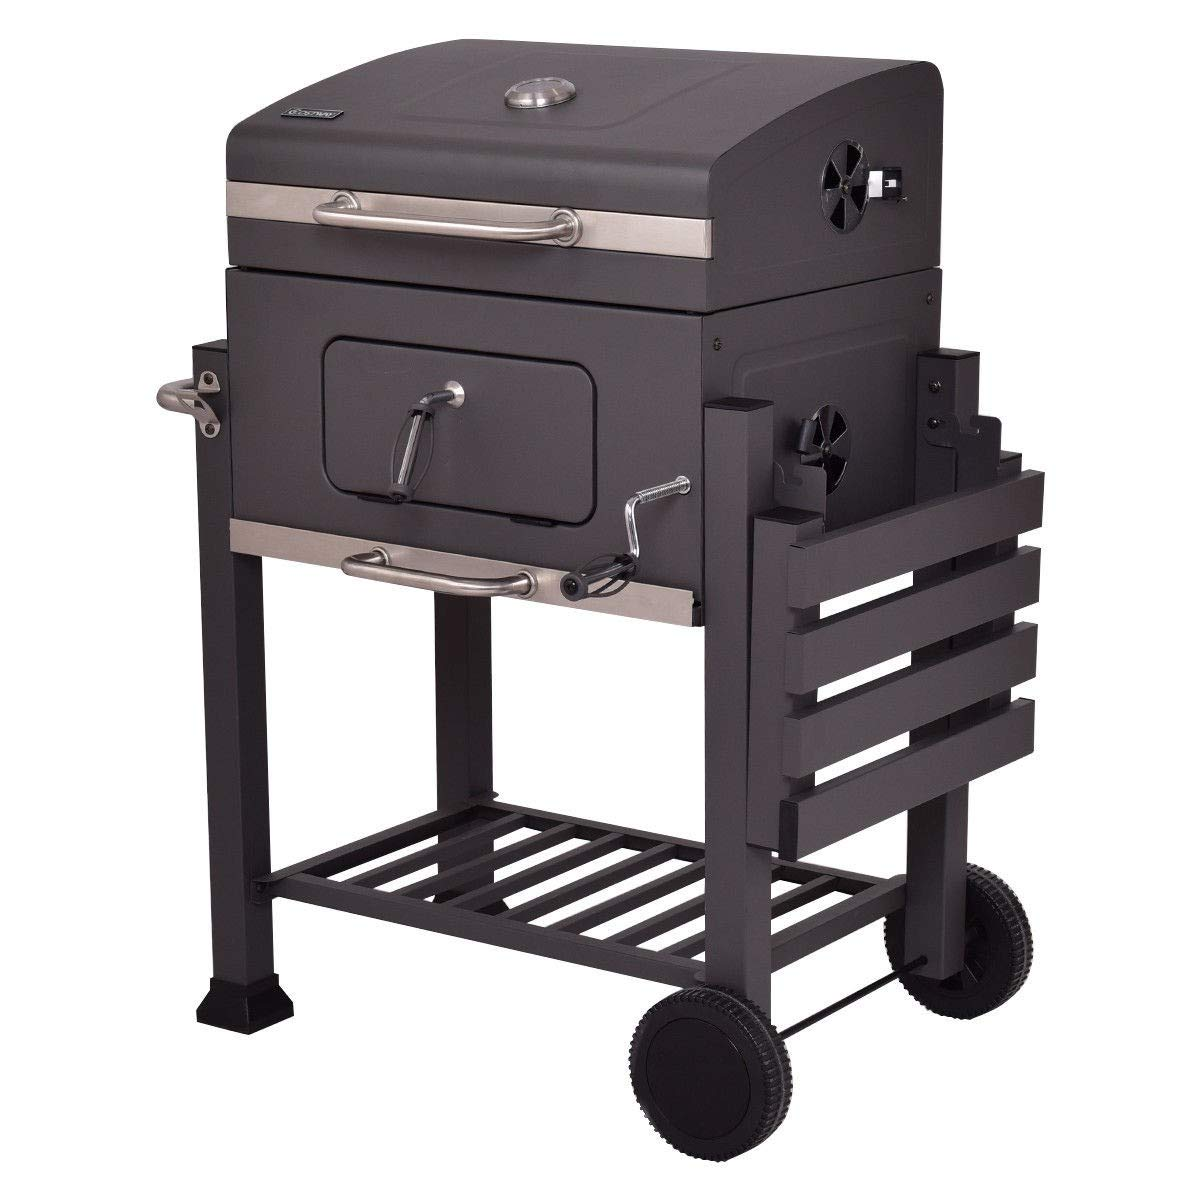 CHOOSEandBUY Charcoal Grill Outdoor Patio Barbecue BBQ Grill New Perfect Beautiful Classic Elegant Useful